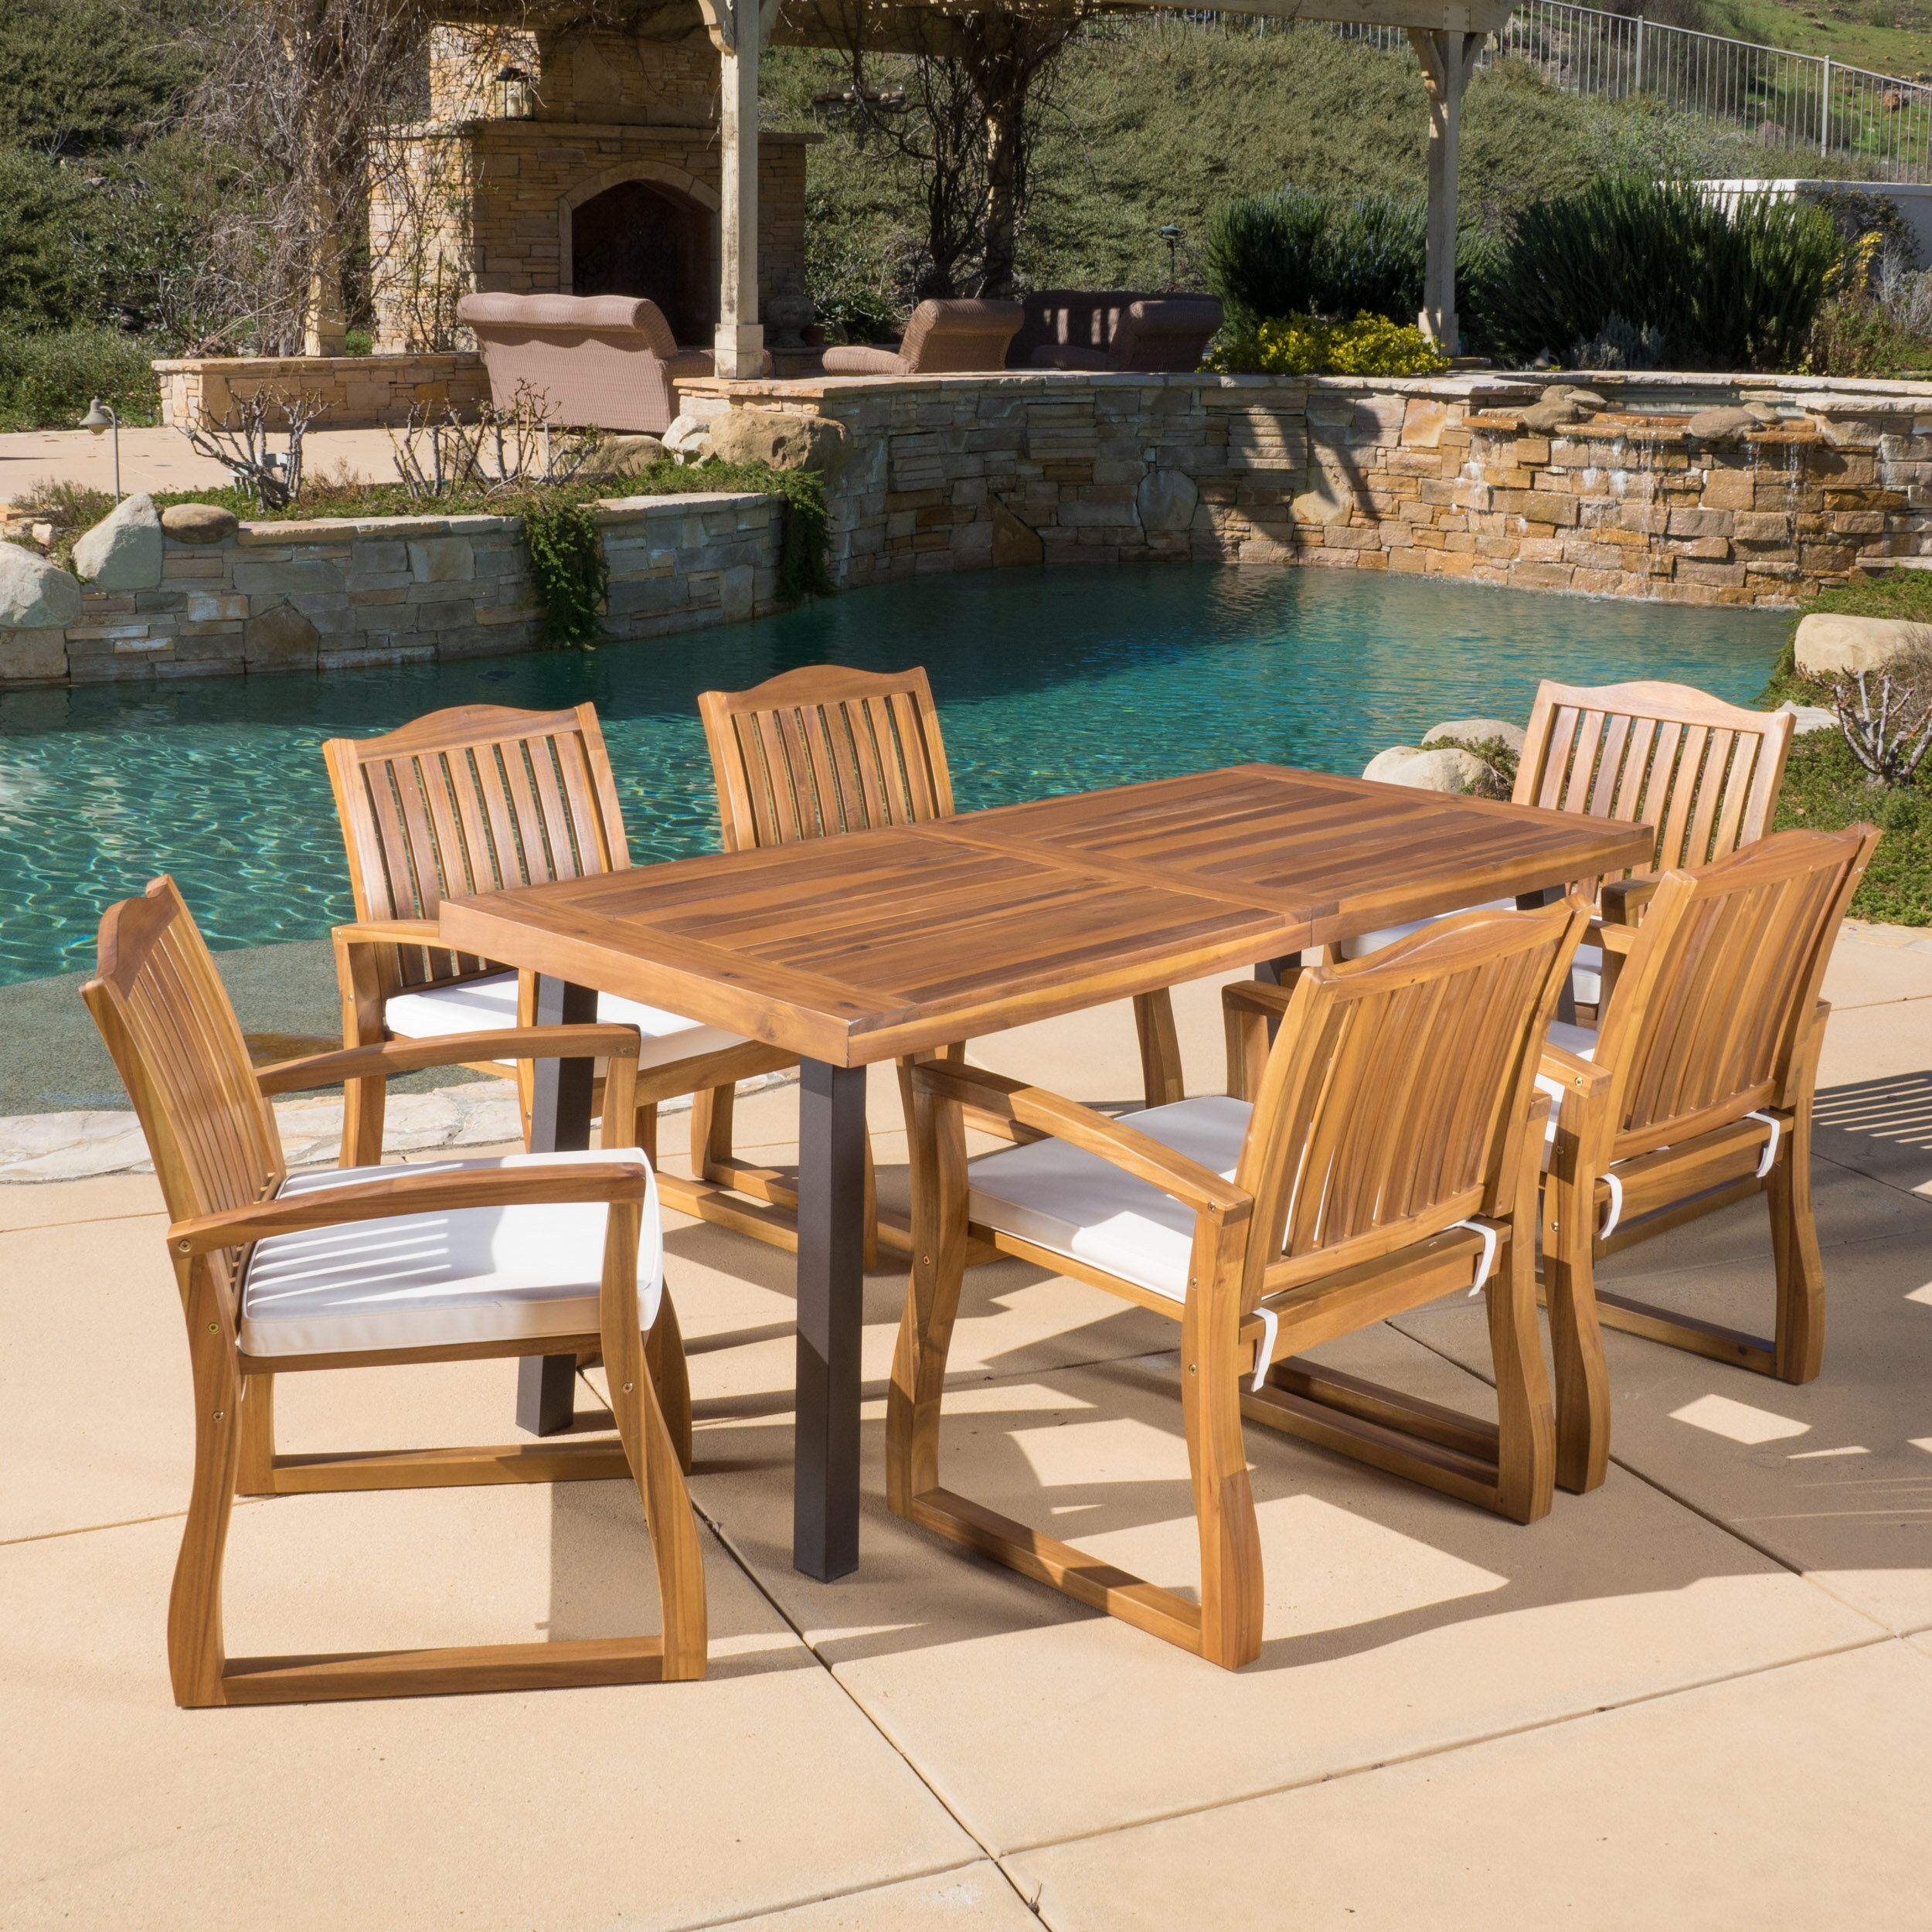 Annabel 7 Piece Dining Set With Cushions Reviews Joss Main